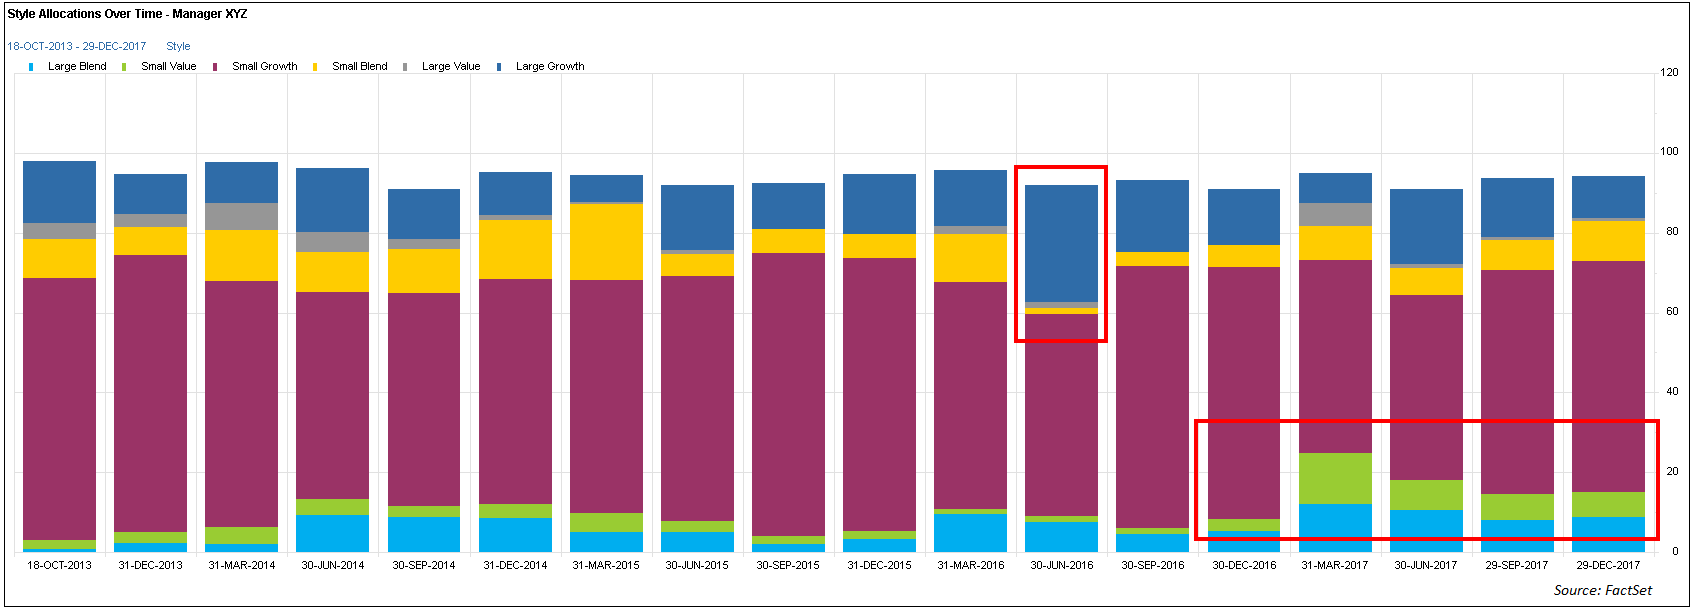 Style Allocations Over Time Manager XYZ